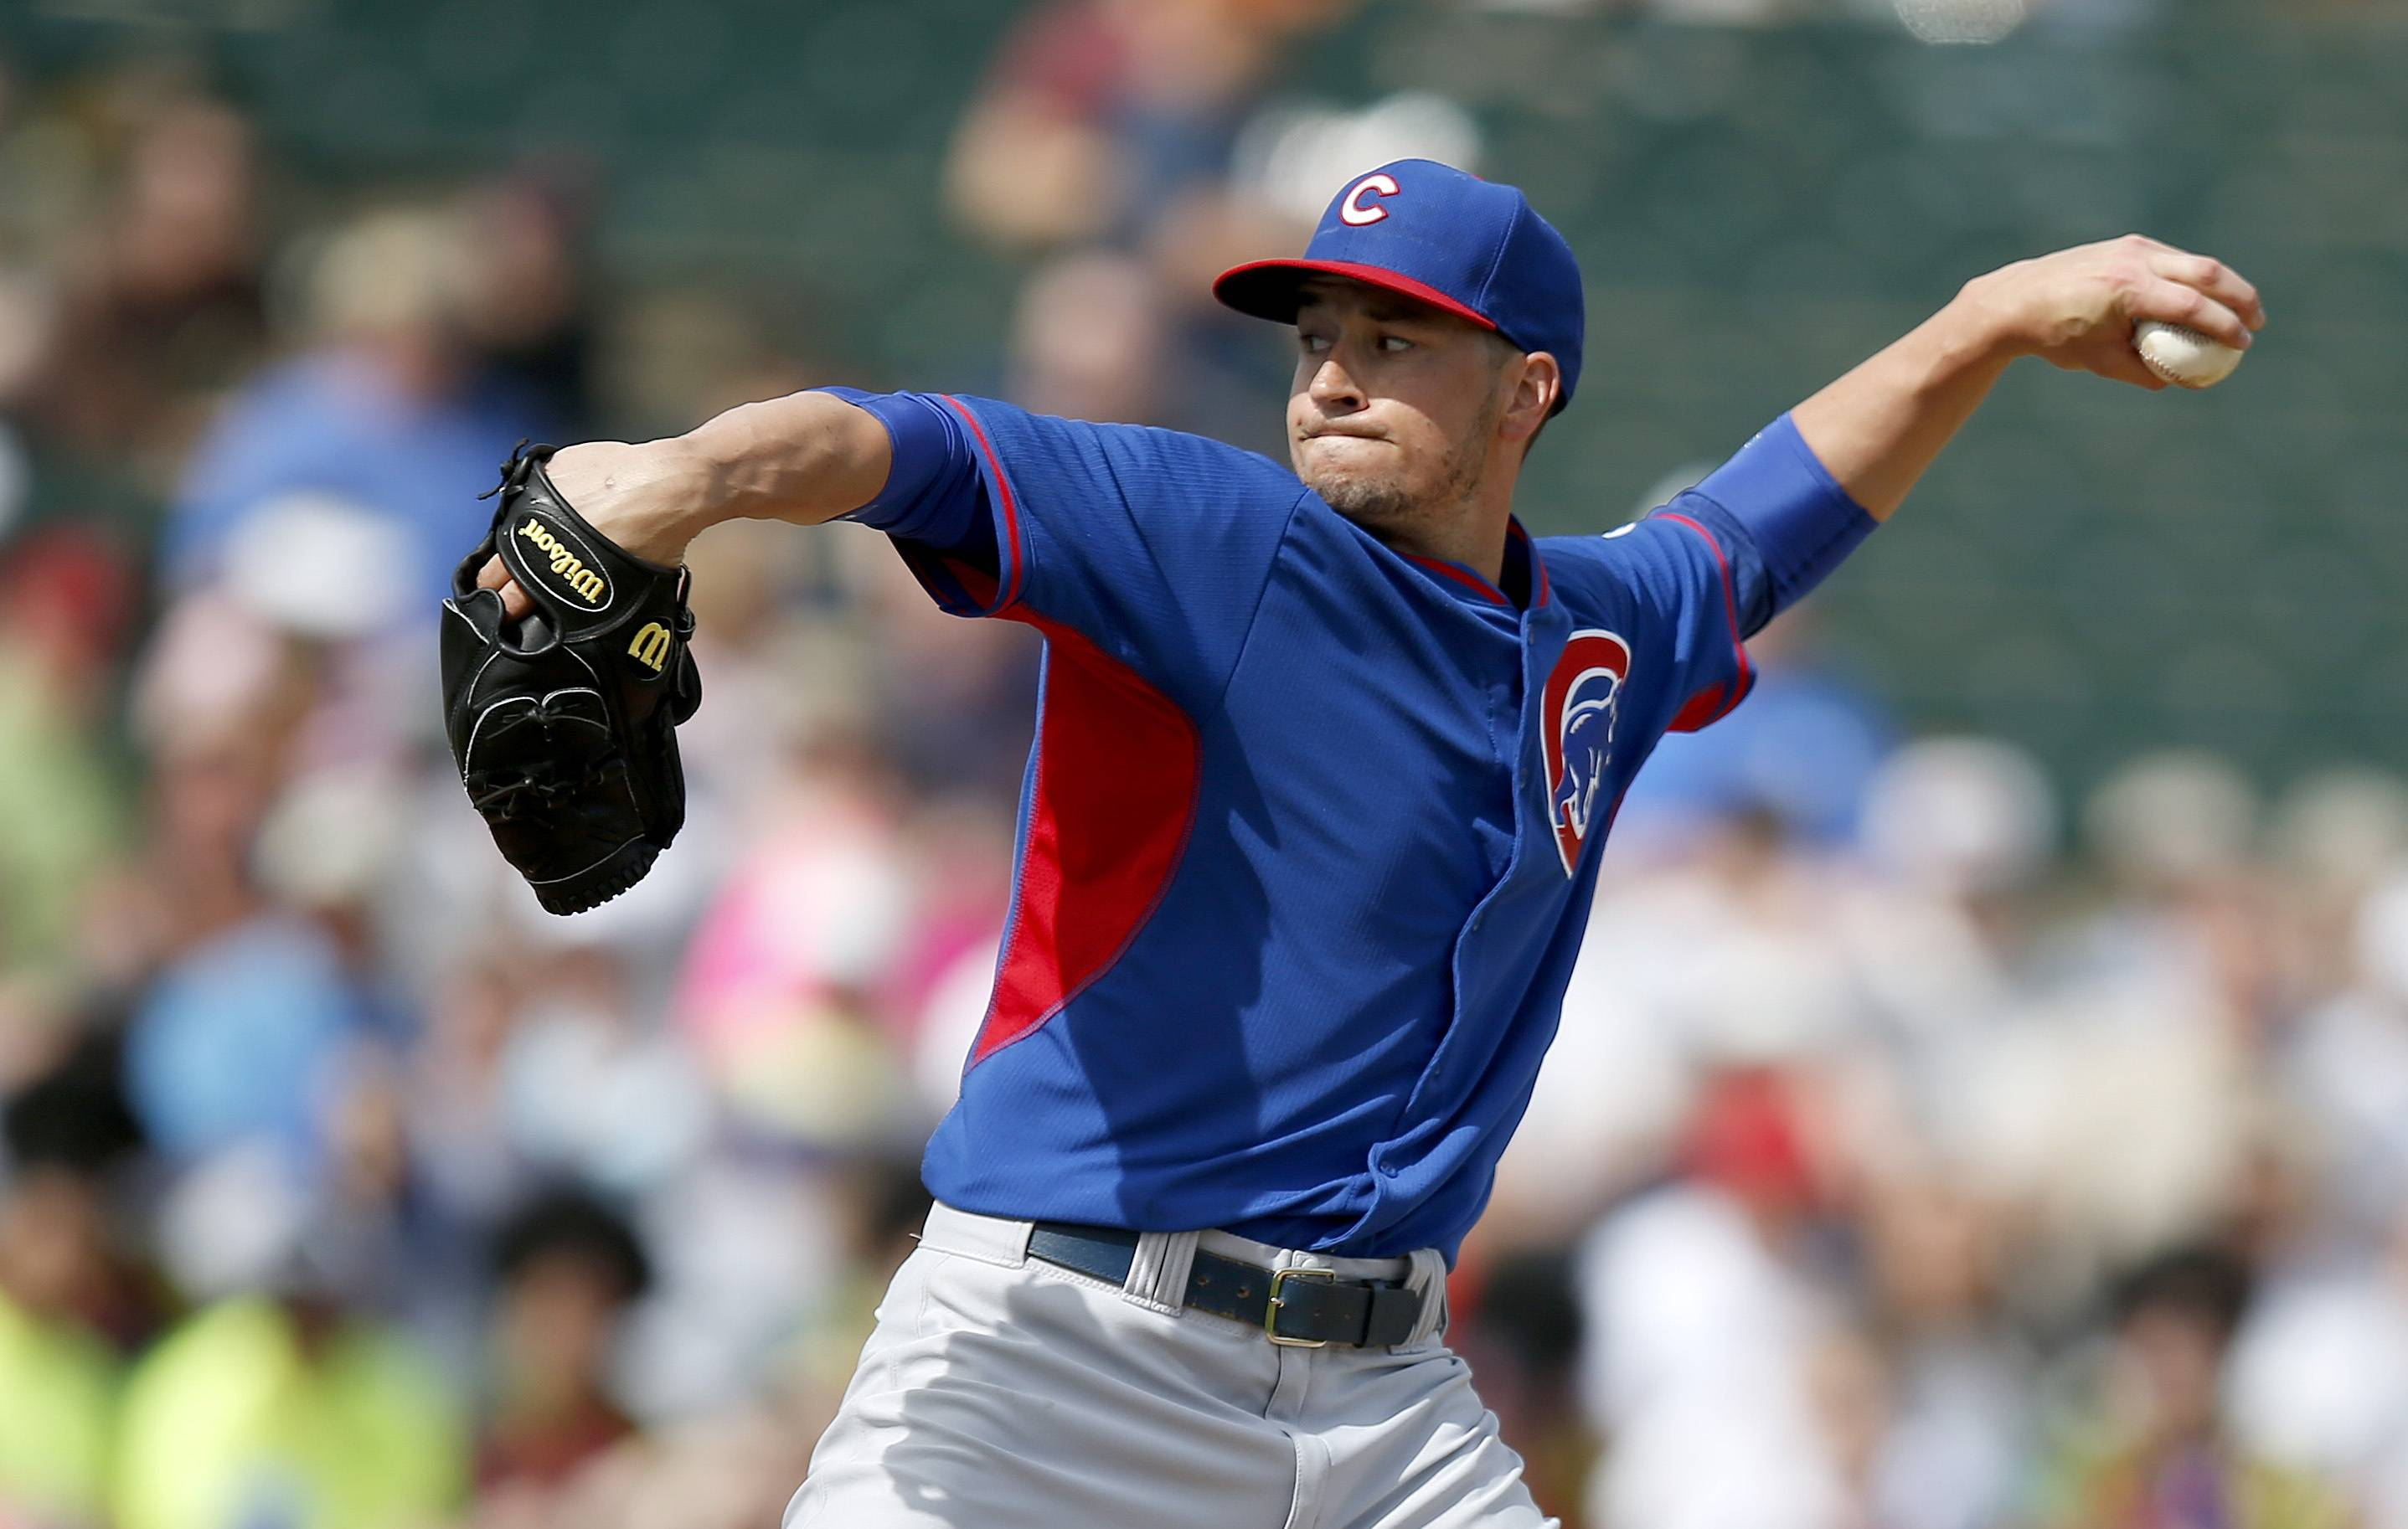 Chicago Cubs' Chris Rusin throws a pitch in the first inning during a spring training baseball game against the Los Angeles Angels, Friday, Feb. 28, 2014, in Tempe, Ariz. The Angels won 15-3.